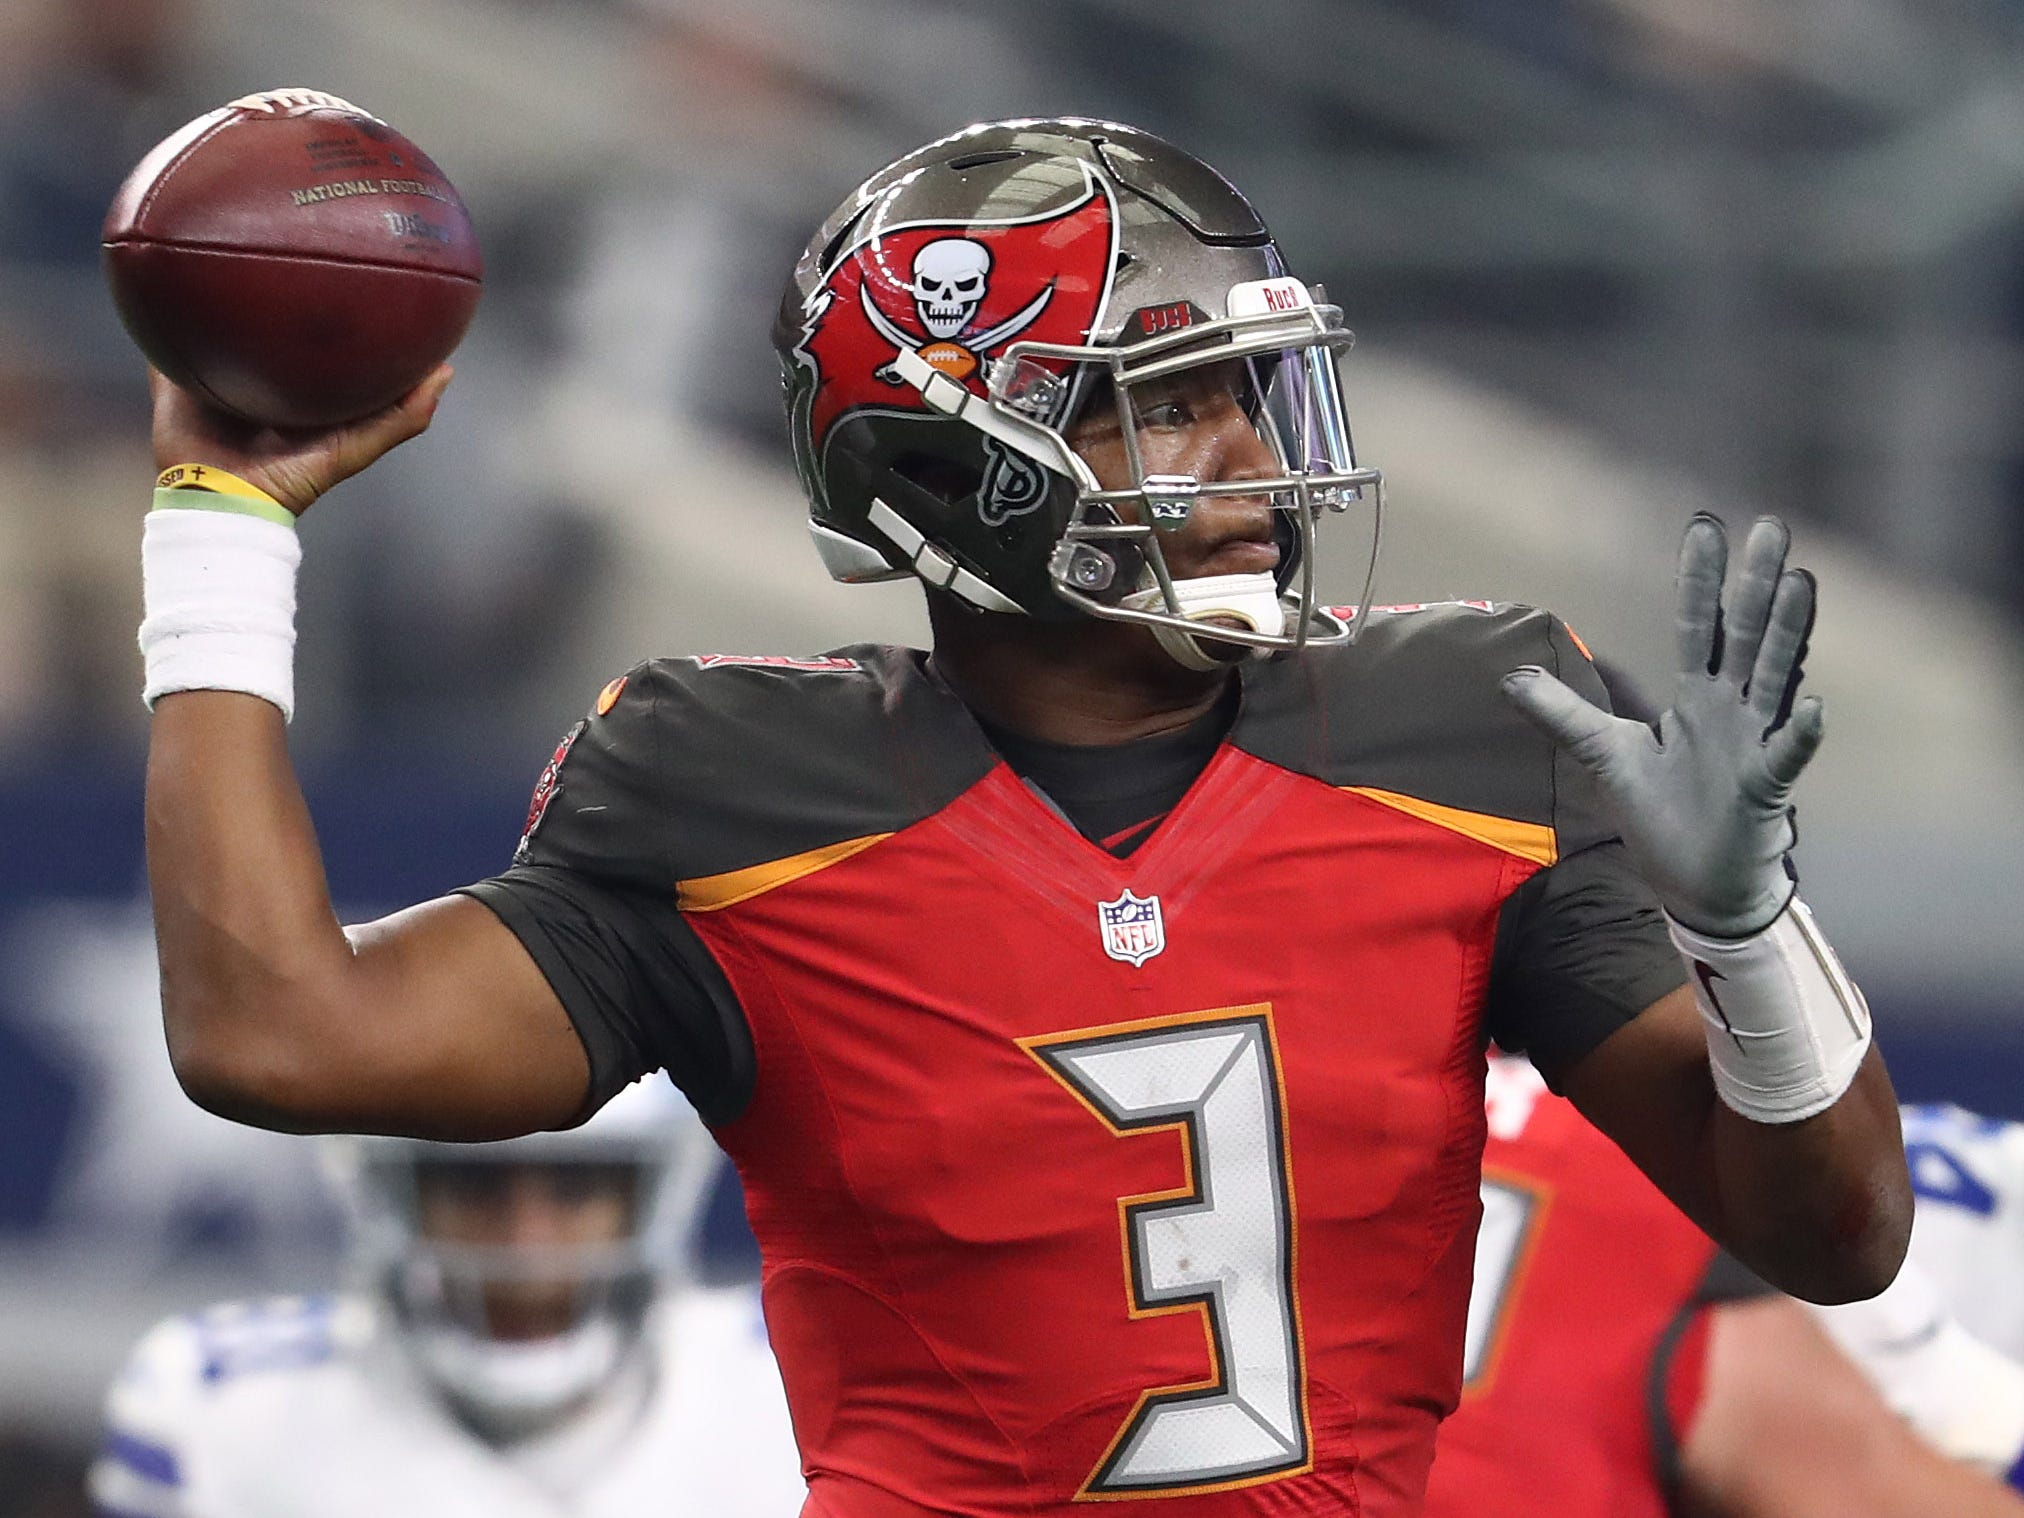 22. Buccaneers (22): Jameis Winston may be about to play final home game as face of this franchise. But will anyone show to wish him well? Or tell him off?